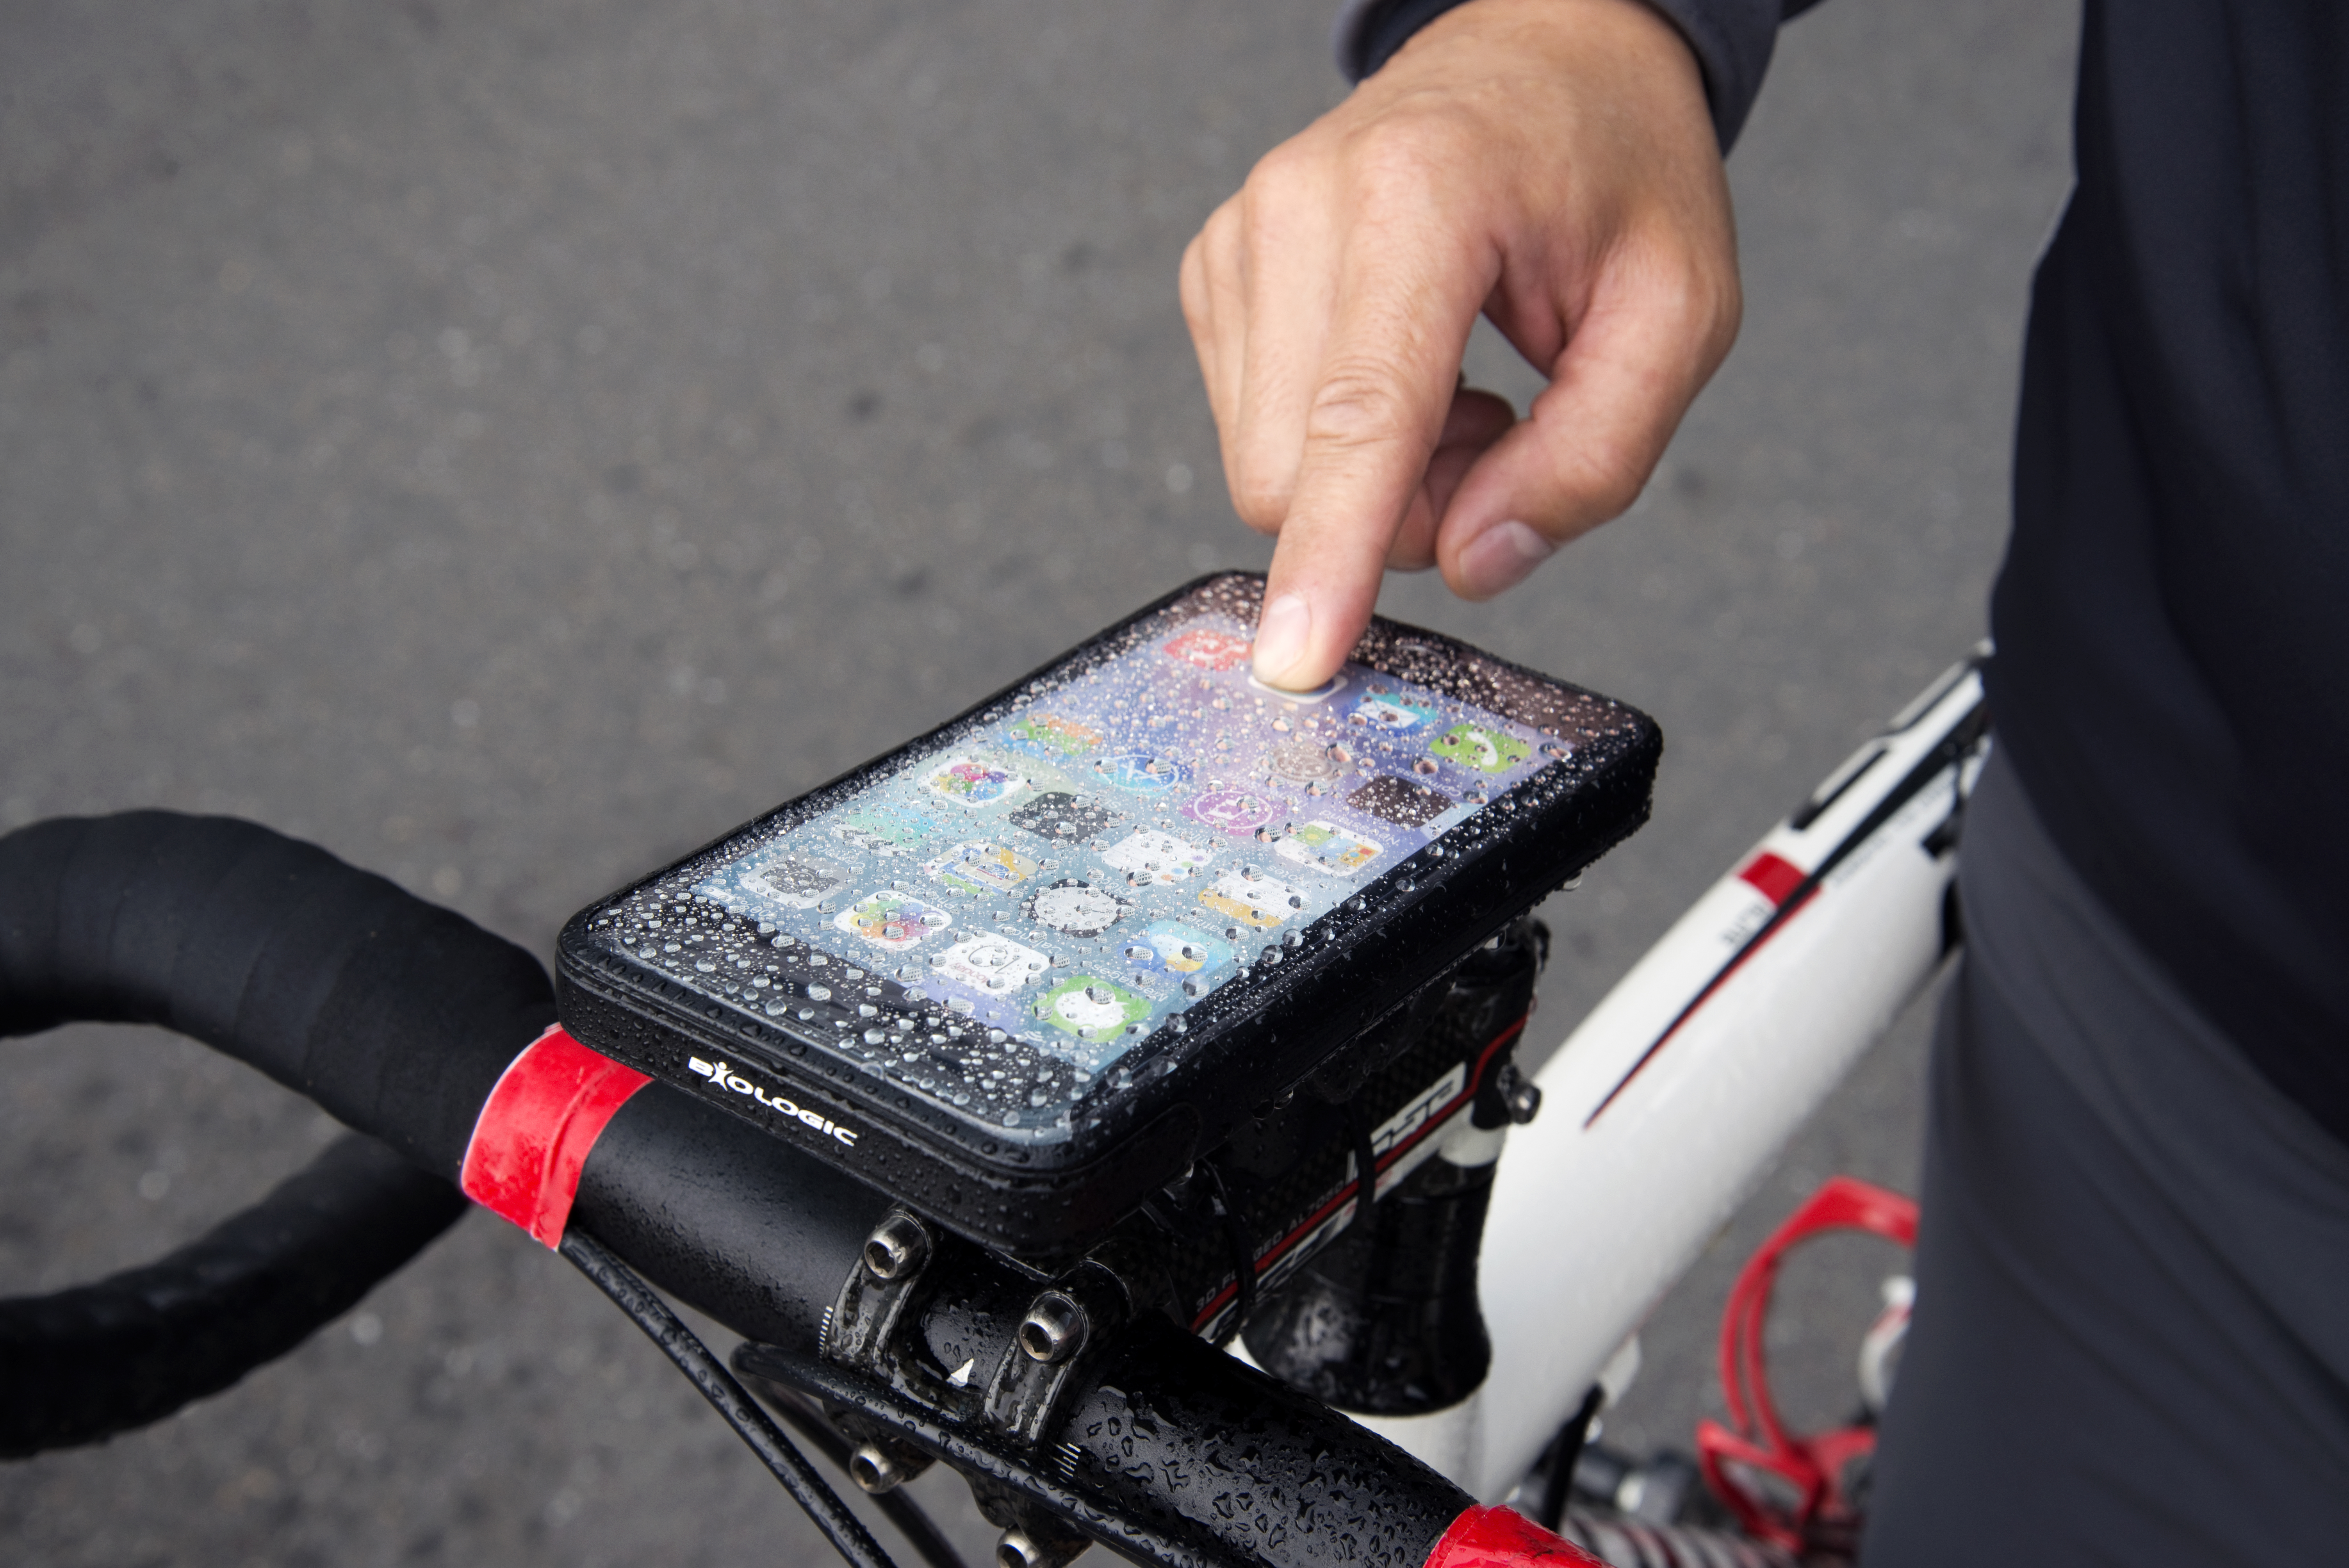 buy popular 4ebde ce7b3 BioLogic Bike Mount WeatherCase for iPhone 7/6/6s